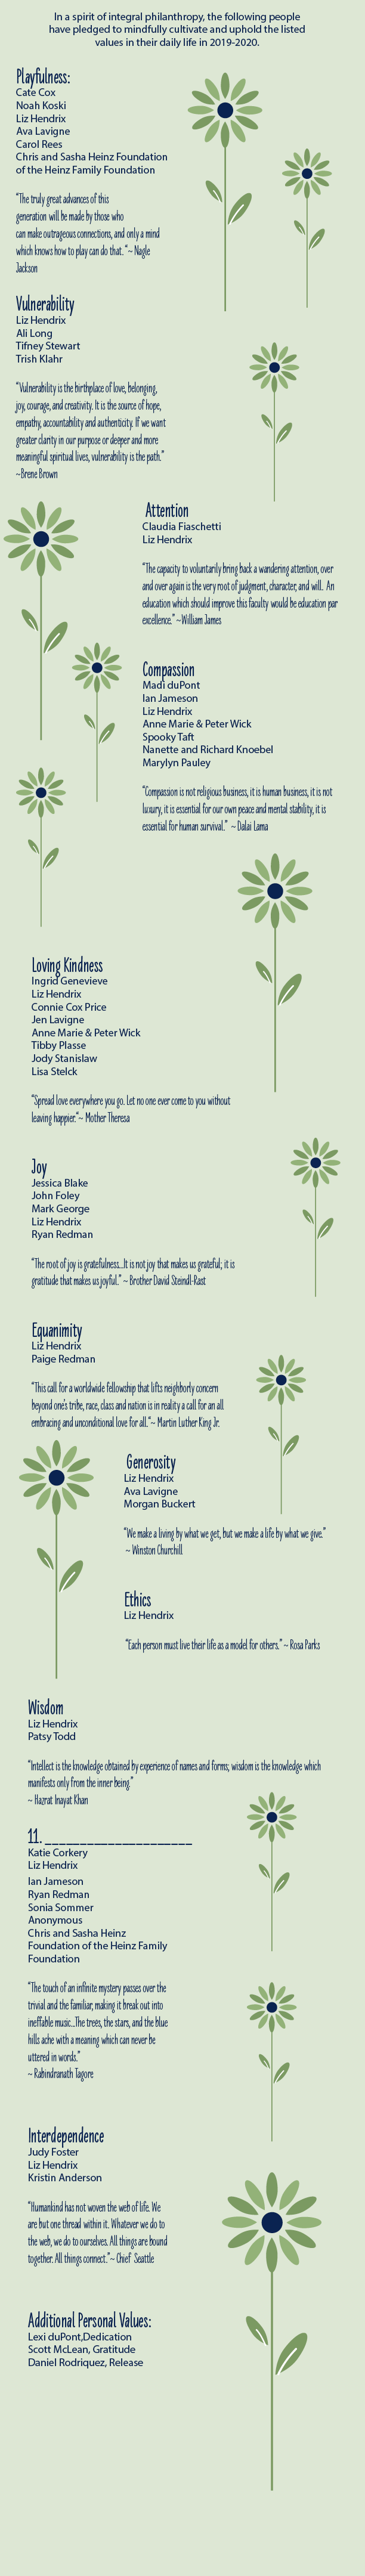 garden of values_9_11_19.png